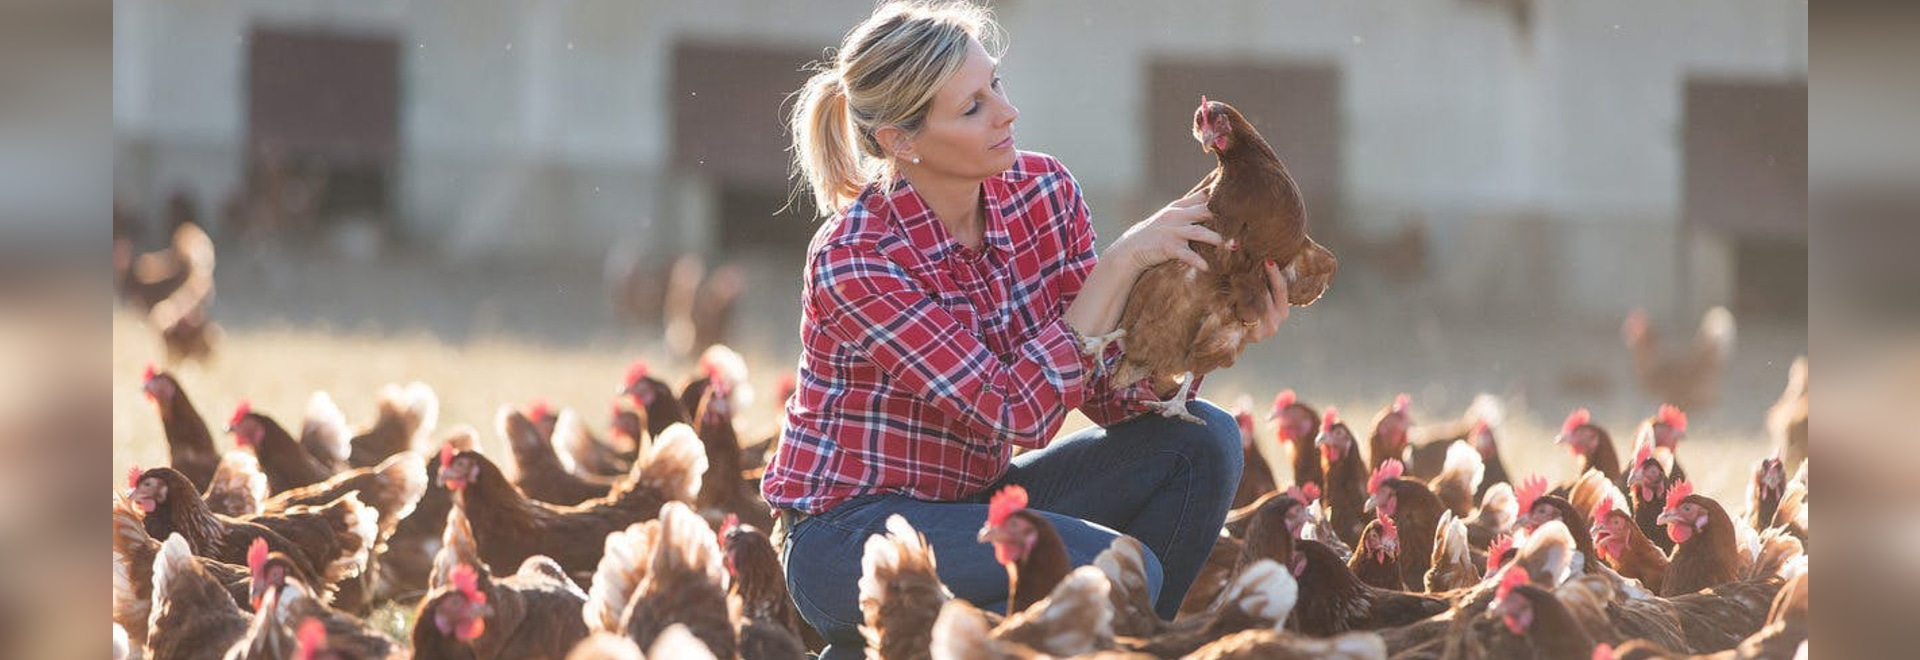 8 digital technologies to disrupt the turkey industry